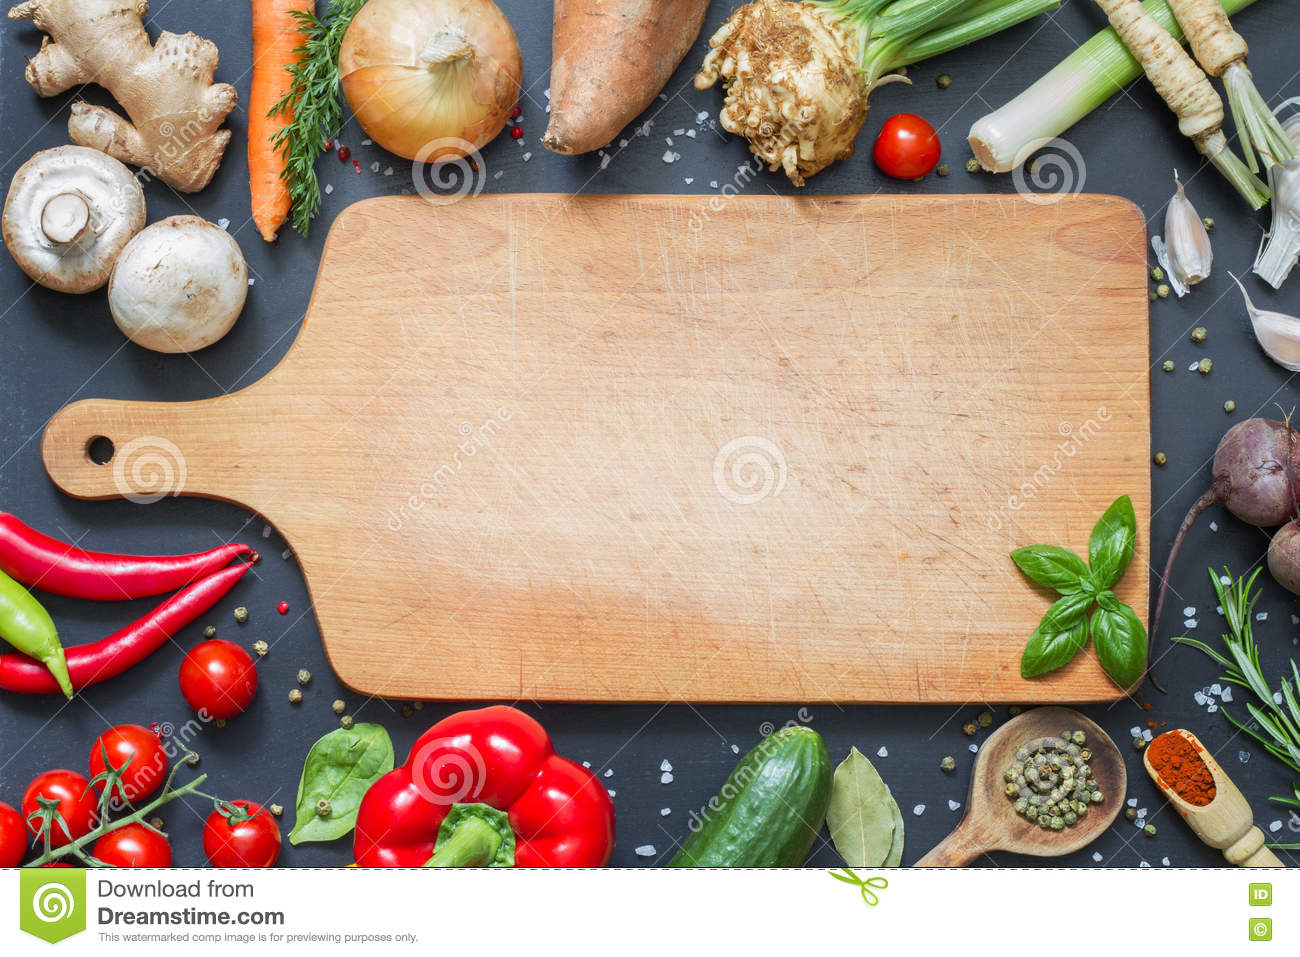 Spice Herbs And Vegetables Food Background And Empty